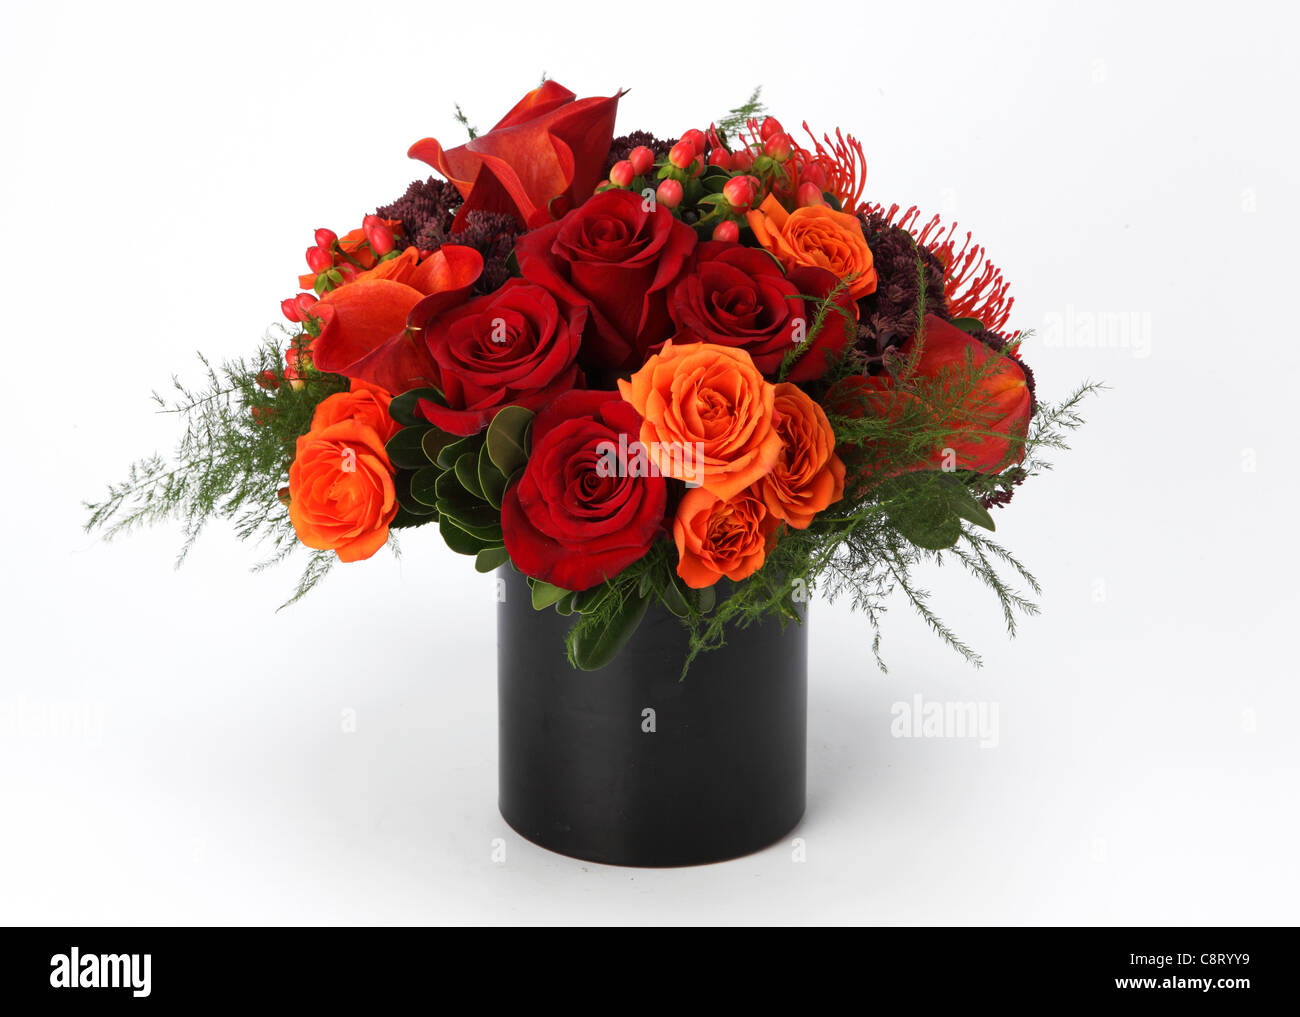 A Colorful Bouquet Of Flowers In A Vase Red Orange Roses Red